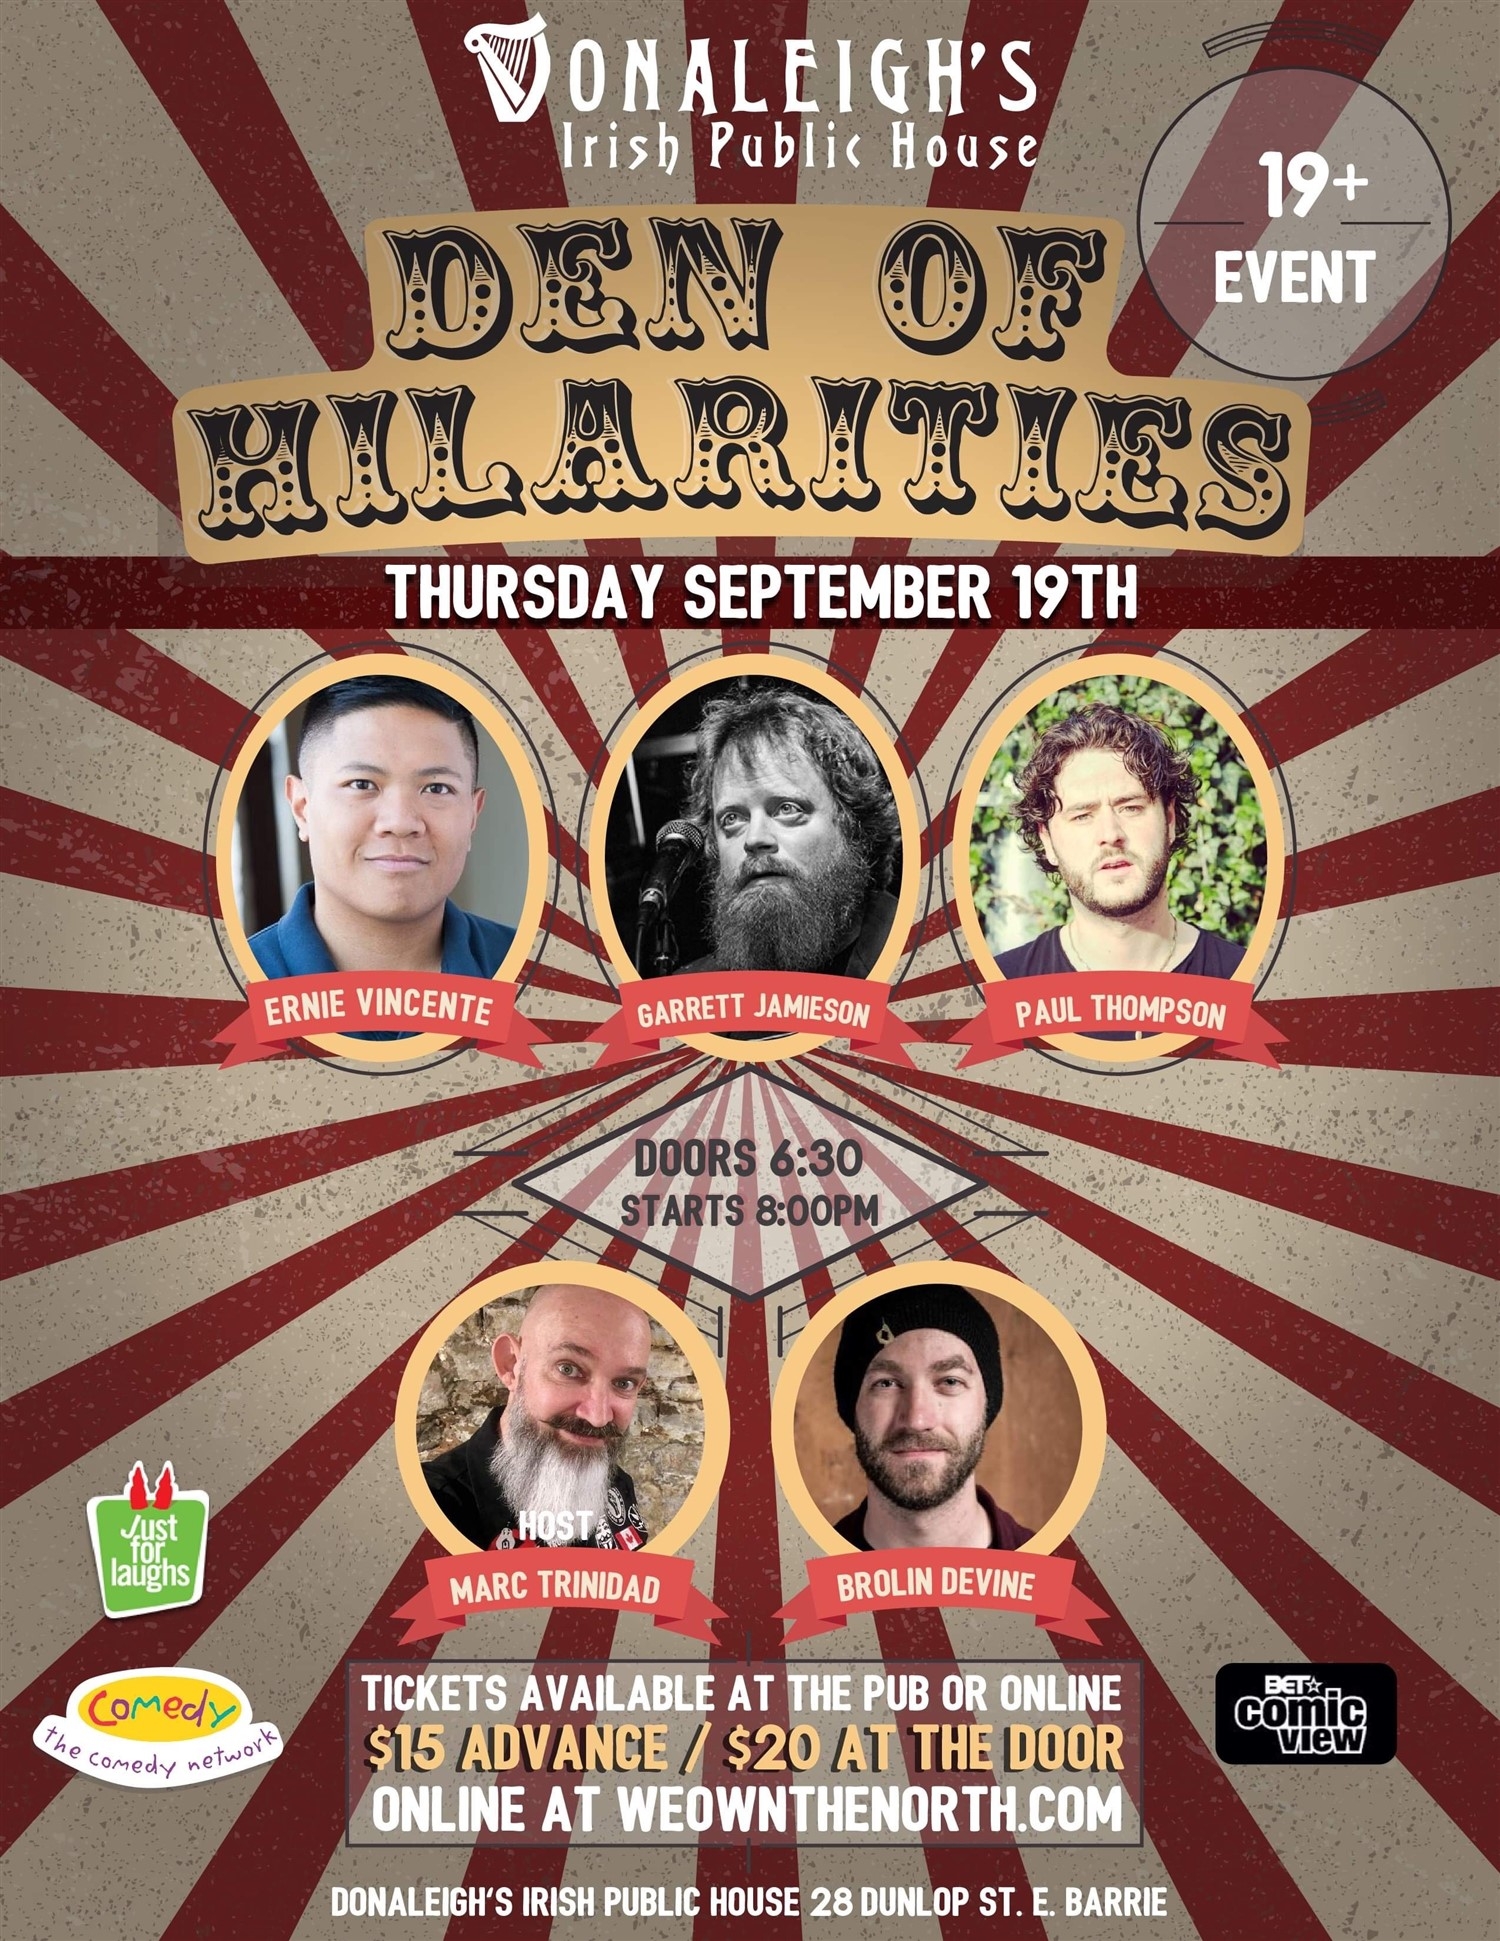 Donaleigh's Den of Hilarities Live Stand Up Comedy on Aug 15, 20:00@Donaleigh's Irish Pub - Buy tickets and Get information on Marc Trinidad Ent